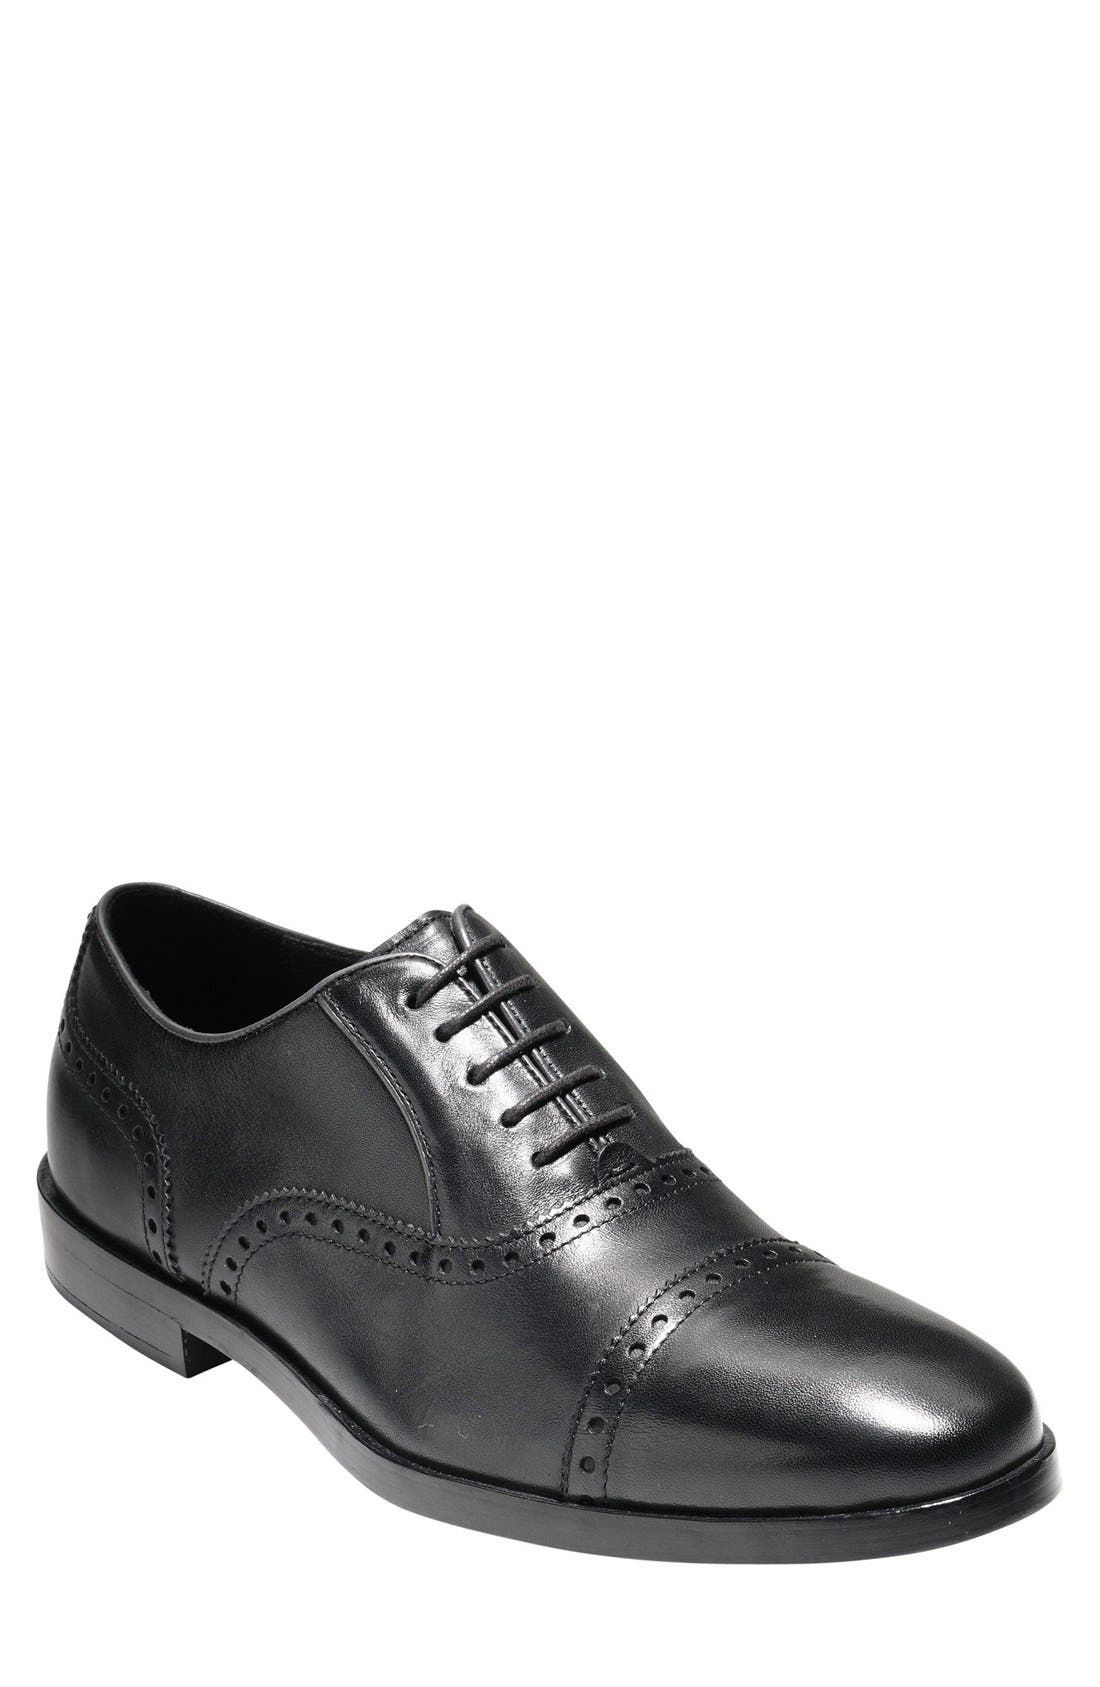 COLE HAAN 'Hamilton' Cap Toe Oxford